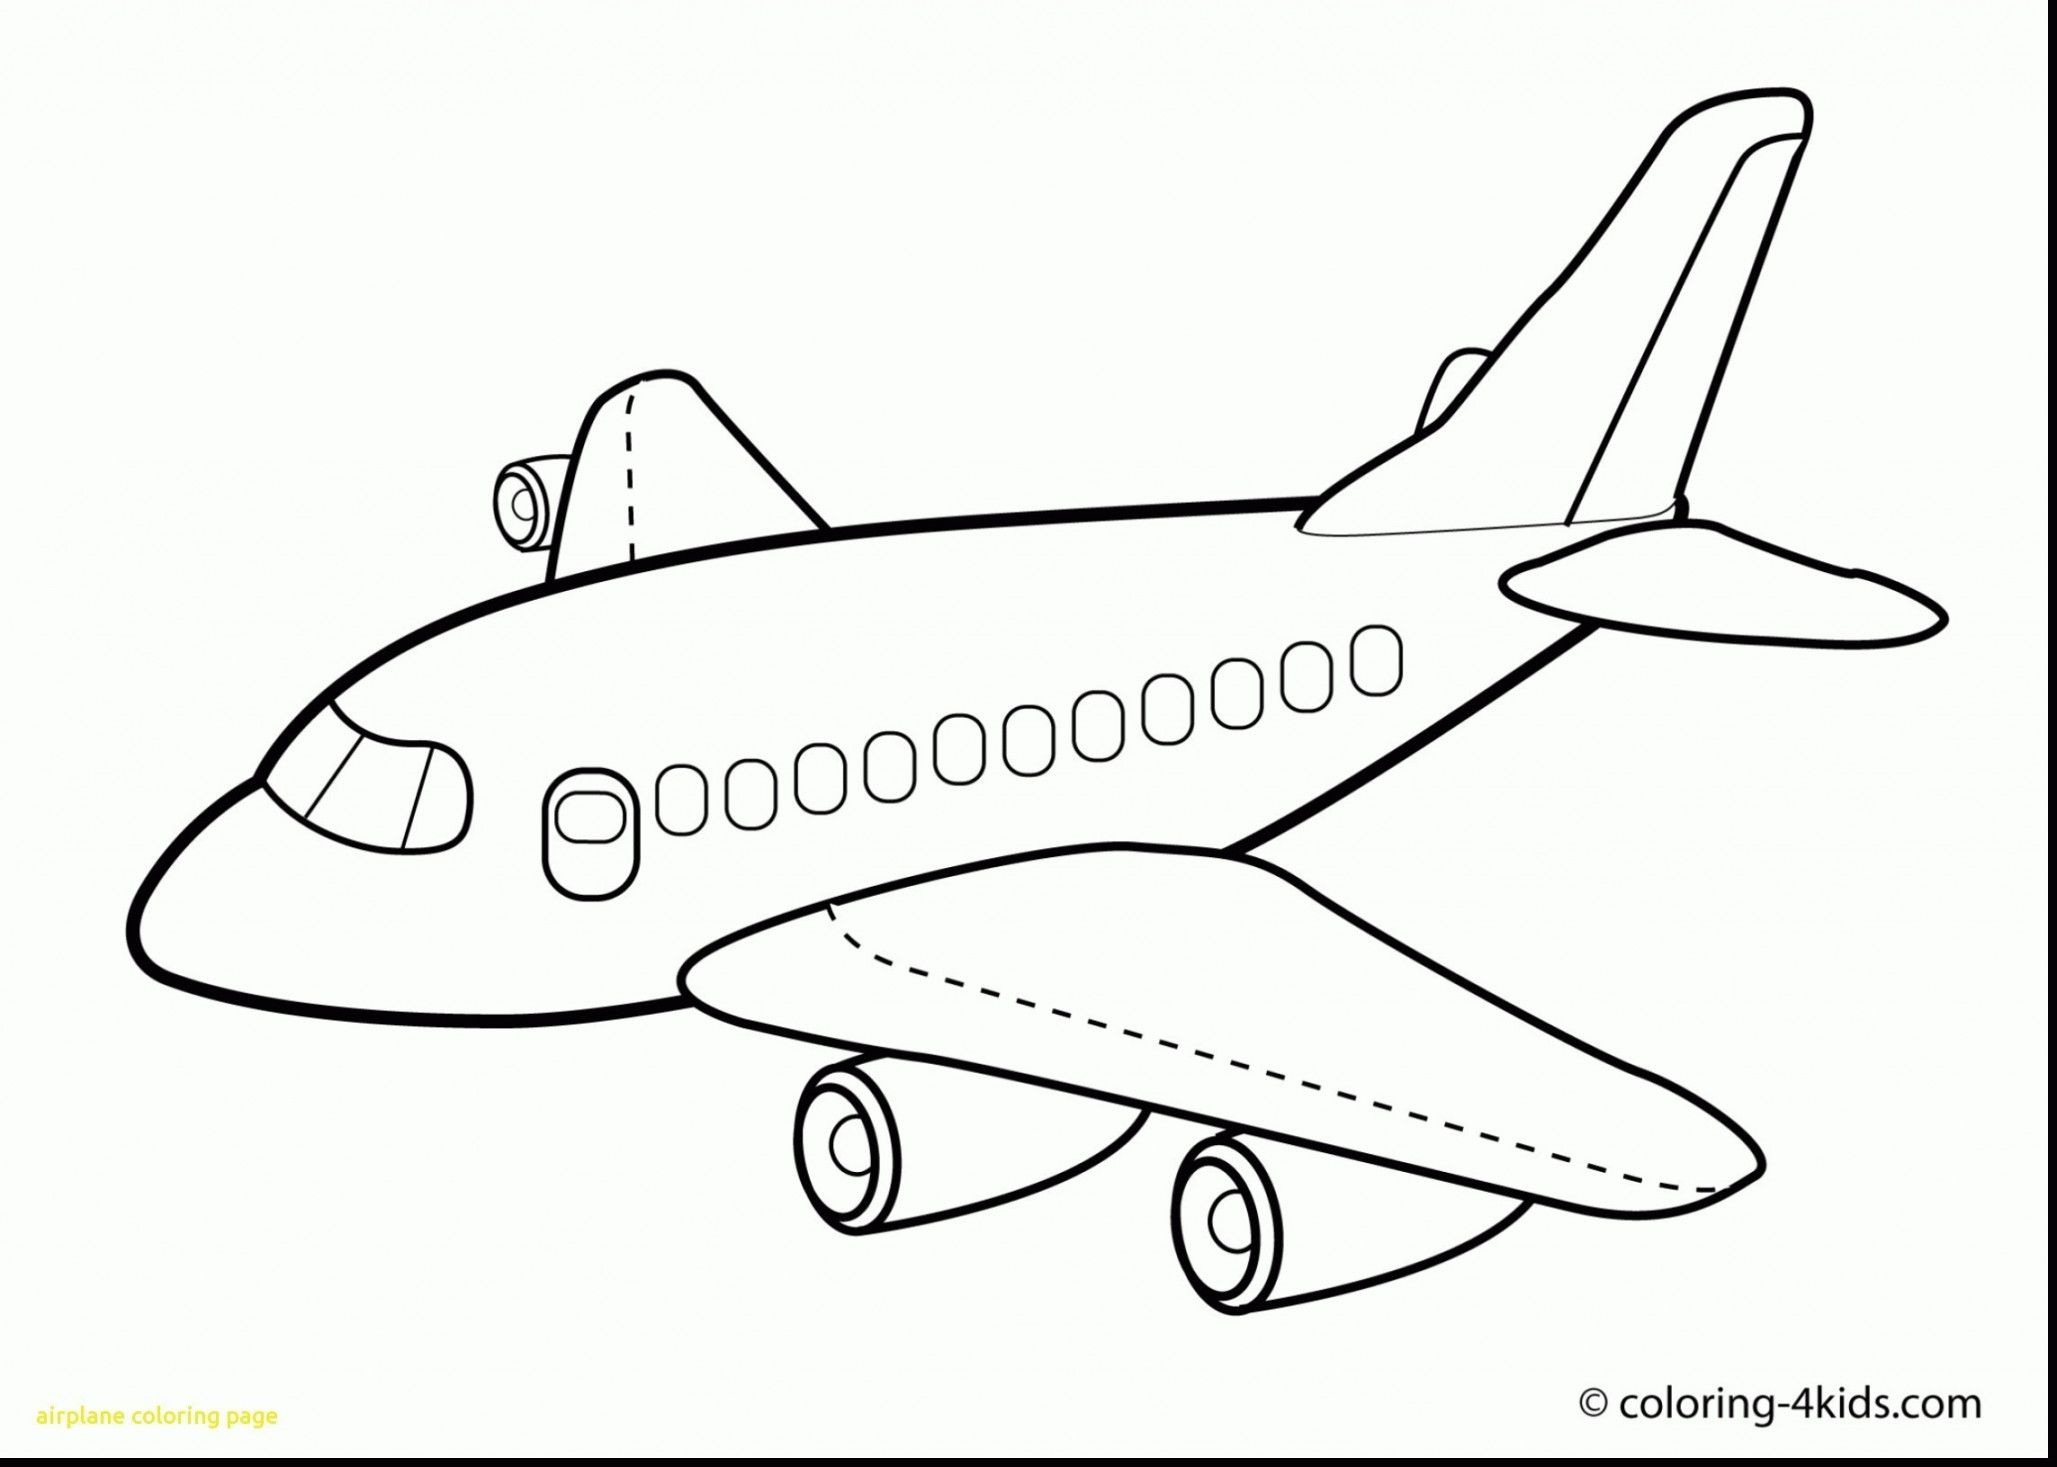 Airplane Coloring Page Jets Logo Coloring Page Collections Of Fighter Jet Coloring Page Entitlementtrap Com Airplane Coloring Pages Airplane Drawing Free Coloring Pages